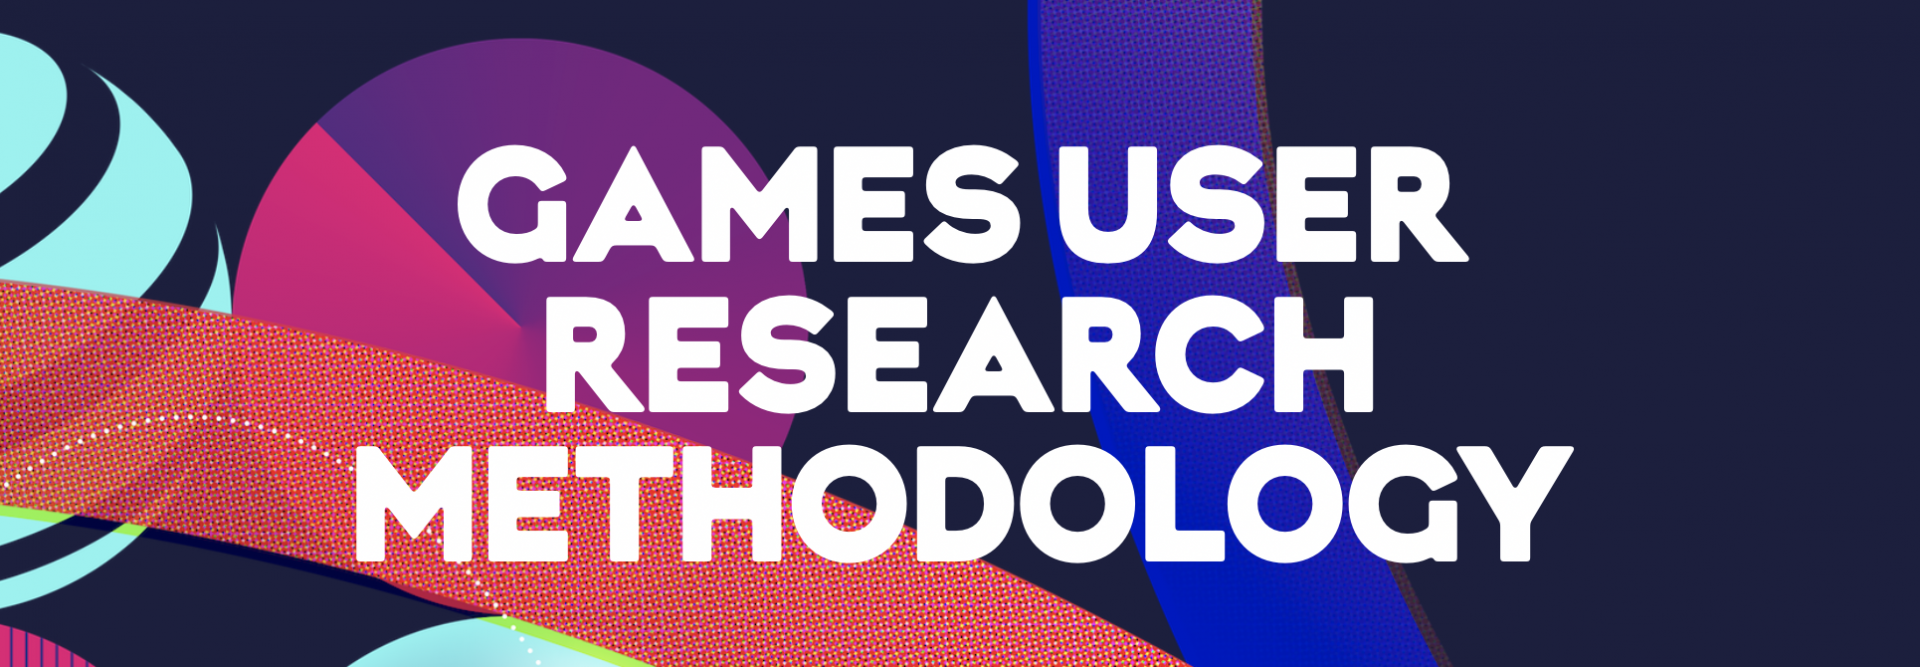 Games User Research Methodology